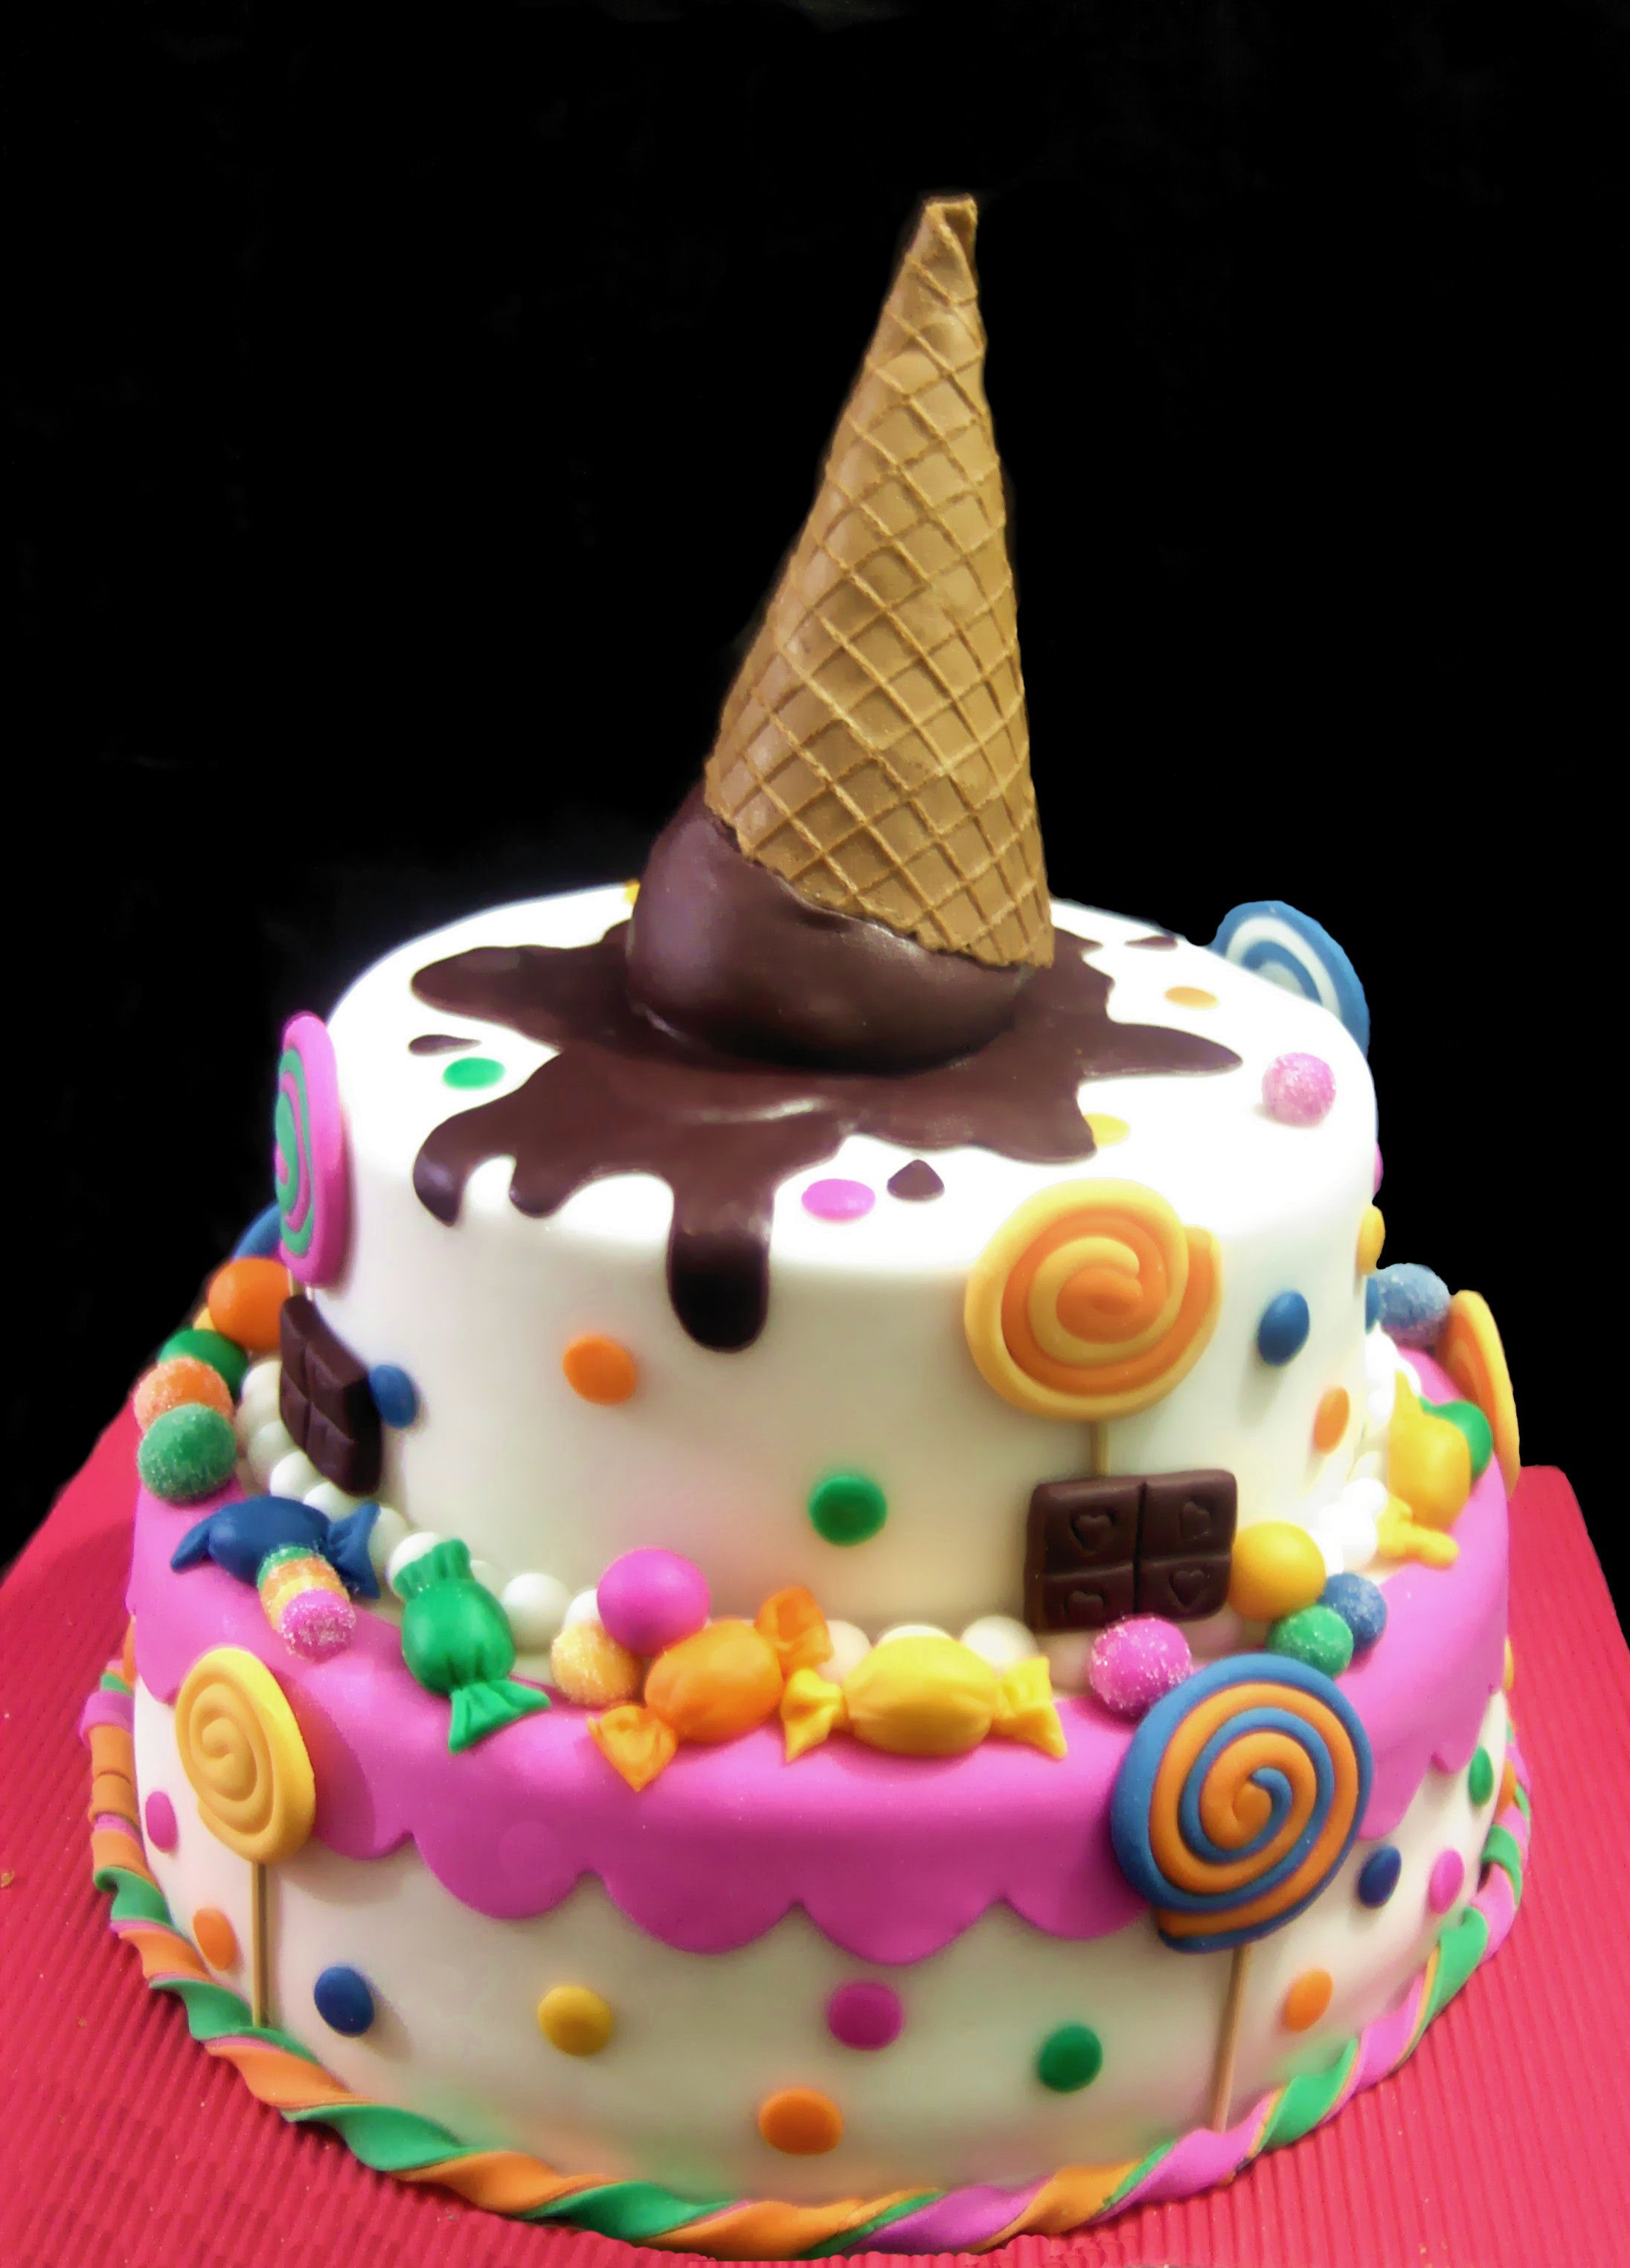 Cute Birthday Cakes Super Cute For A Little Girls Cake Cakes Cake Birthday Cake